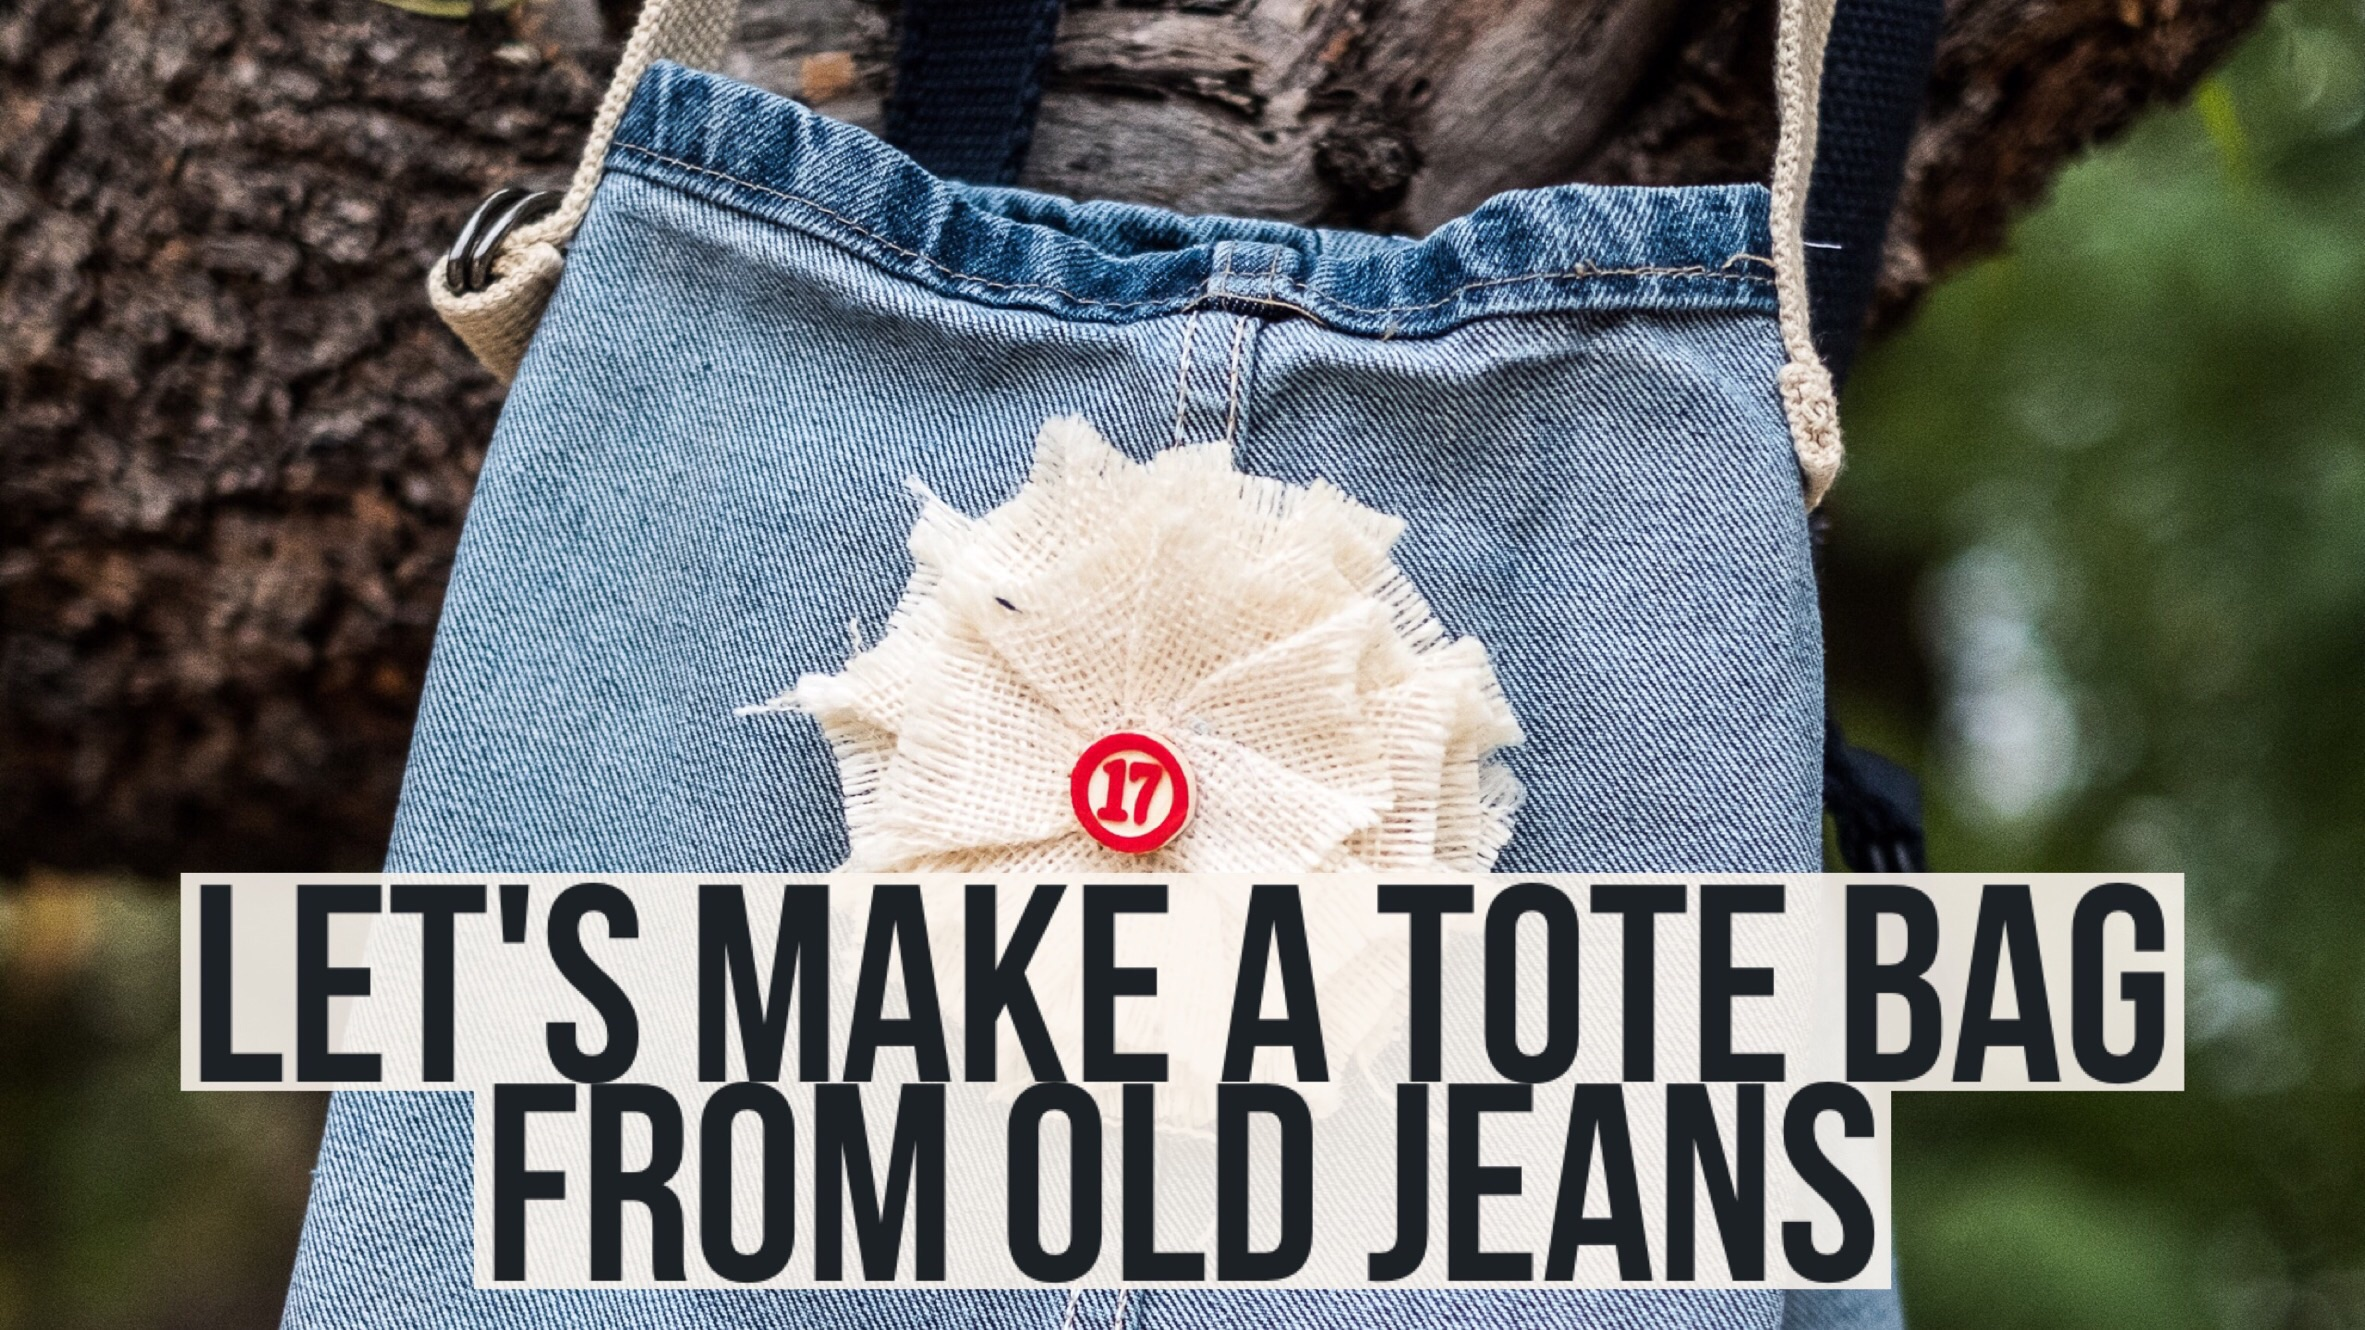 How to make a tote bag from old jeans